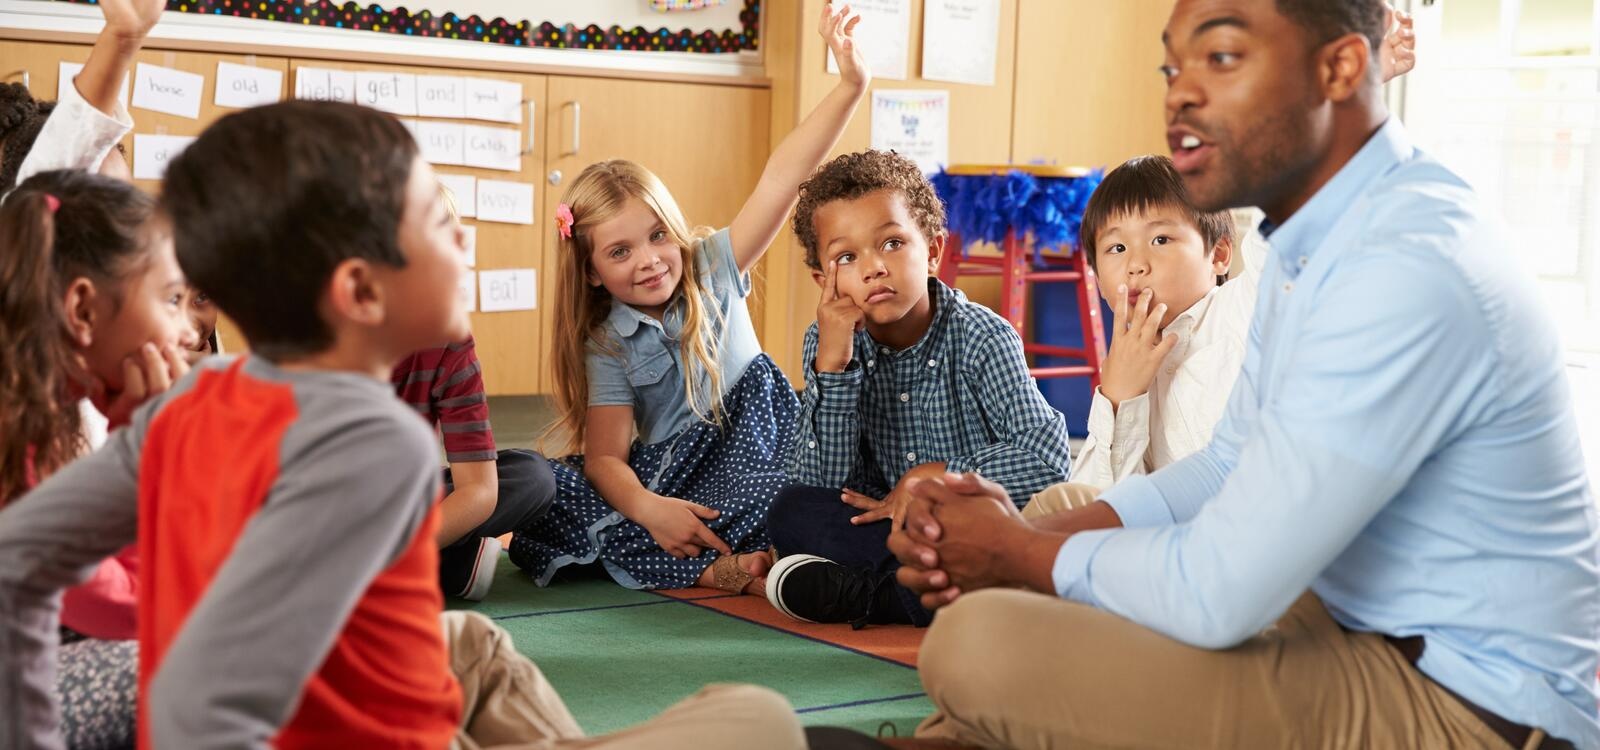 Sitting among his students, a teach sits on the floor with his legs crossed as he talks to children with their hands raised